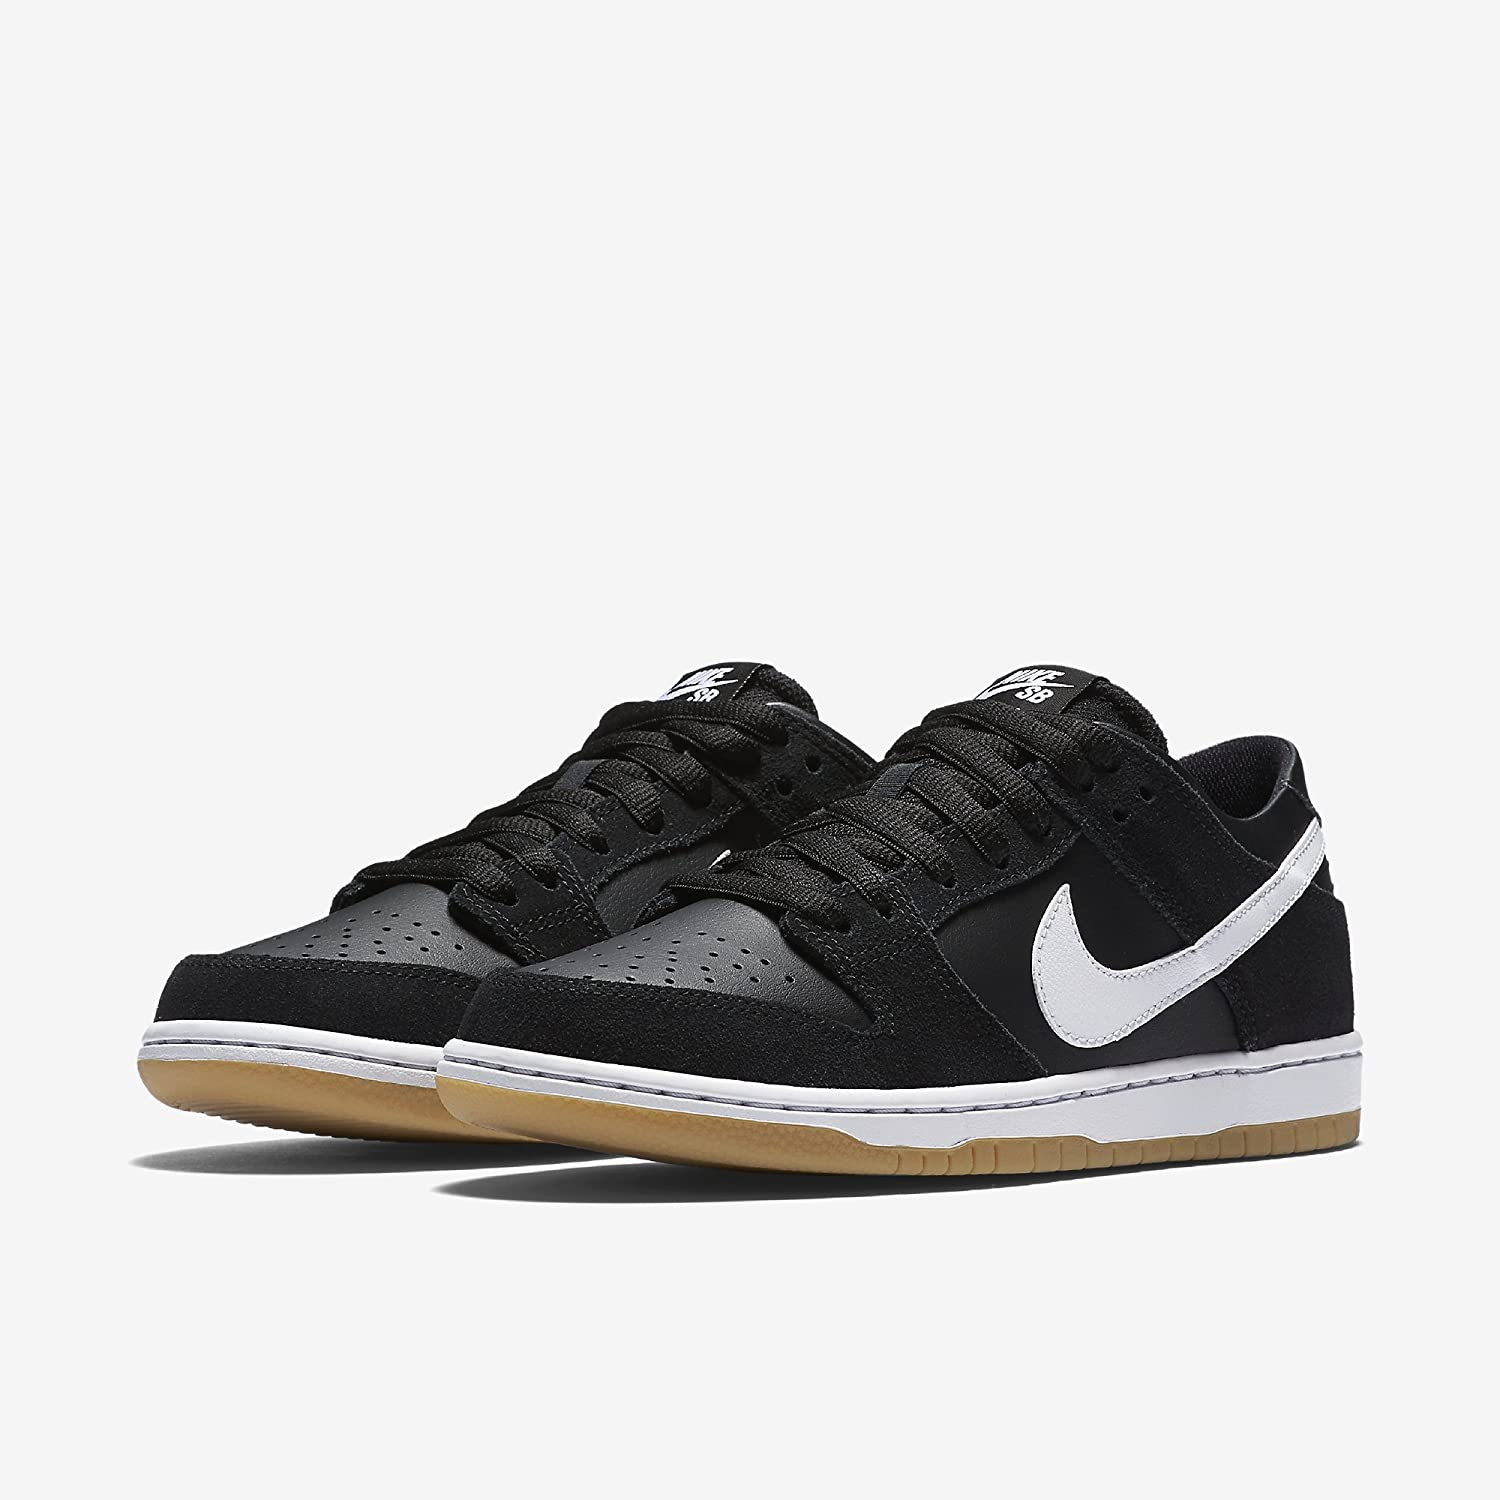 d3bc55549079 Amazon.com  NIKE Men s Sb Zoom Dunk Low Pro Black White Gum Light Brown  Skate Shoe (5.5)  Sports   Outdoors